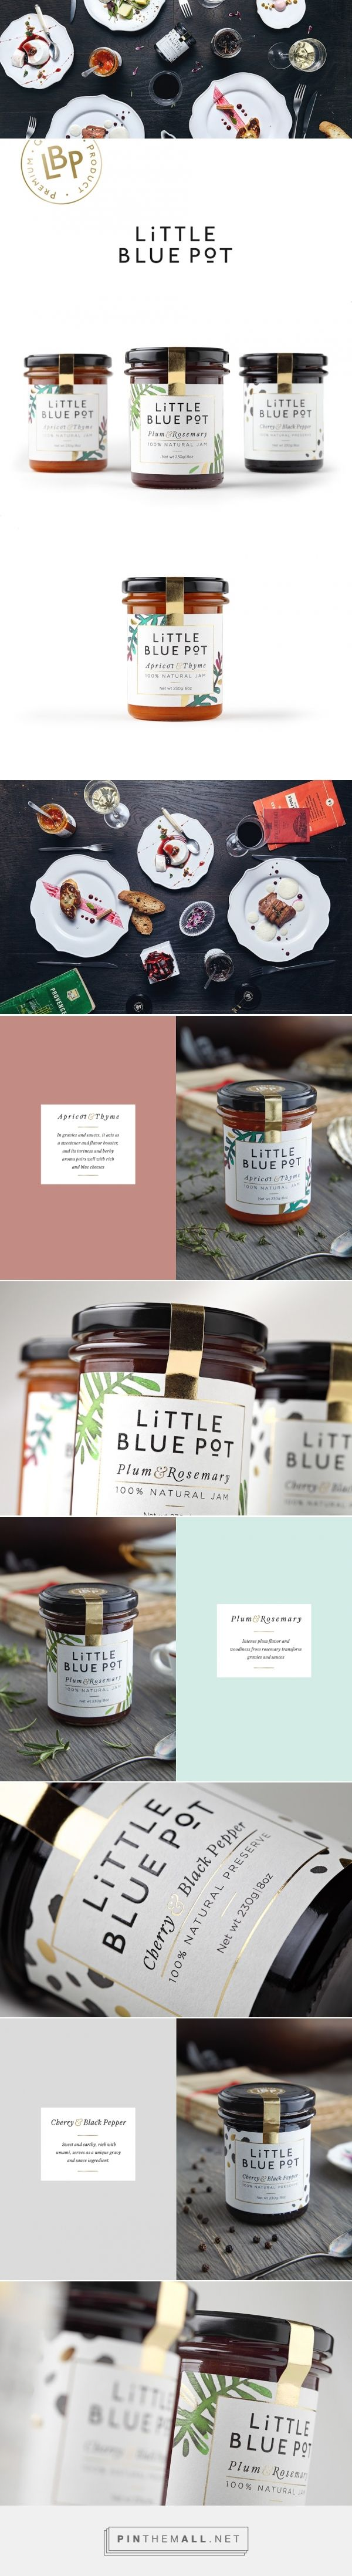 Little Blue Pot Jam packaging design by Coba&Associates (Serbia) - http://www.packagingoftheworld.com/2016/05/little-blue-pot.html